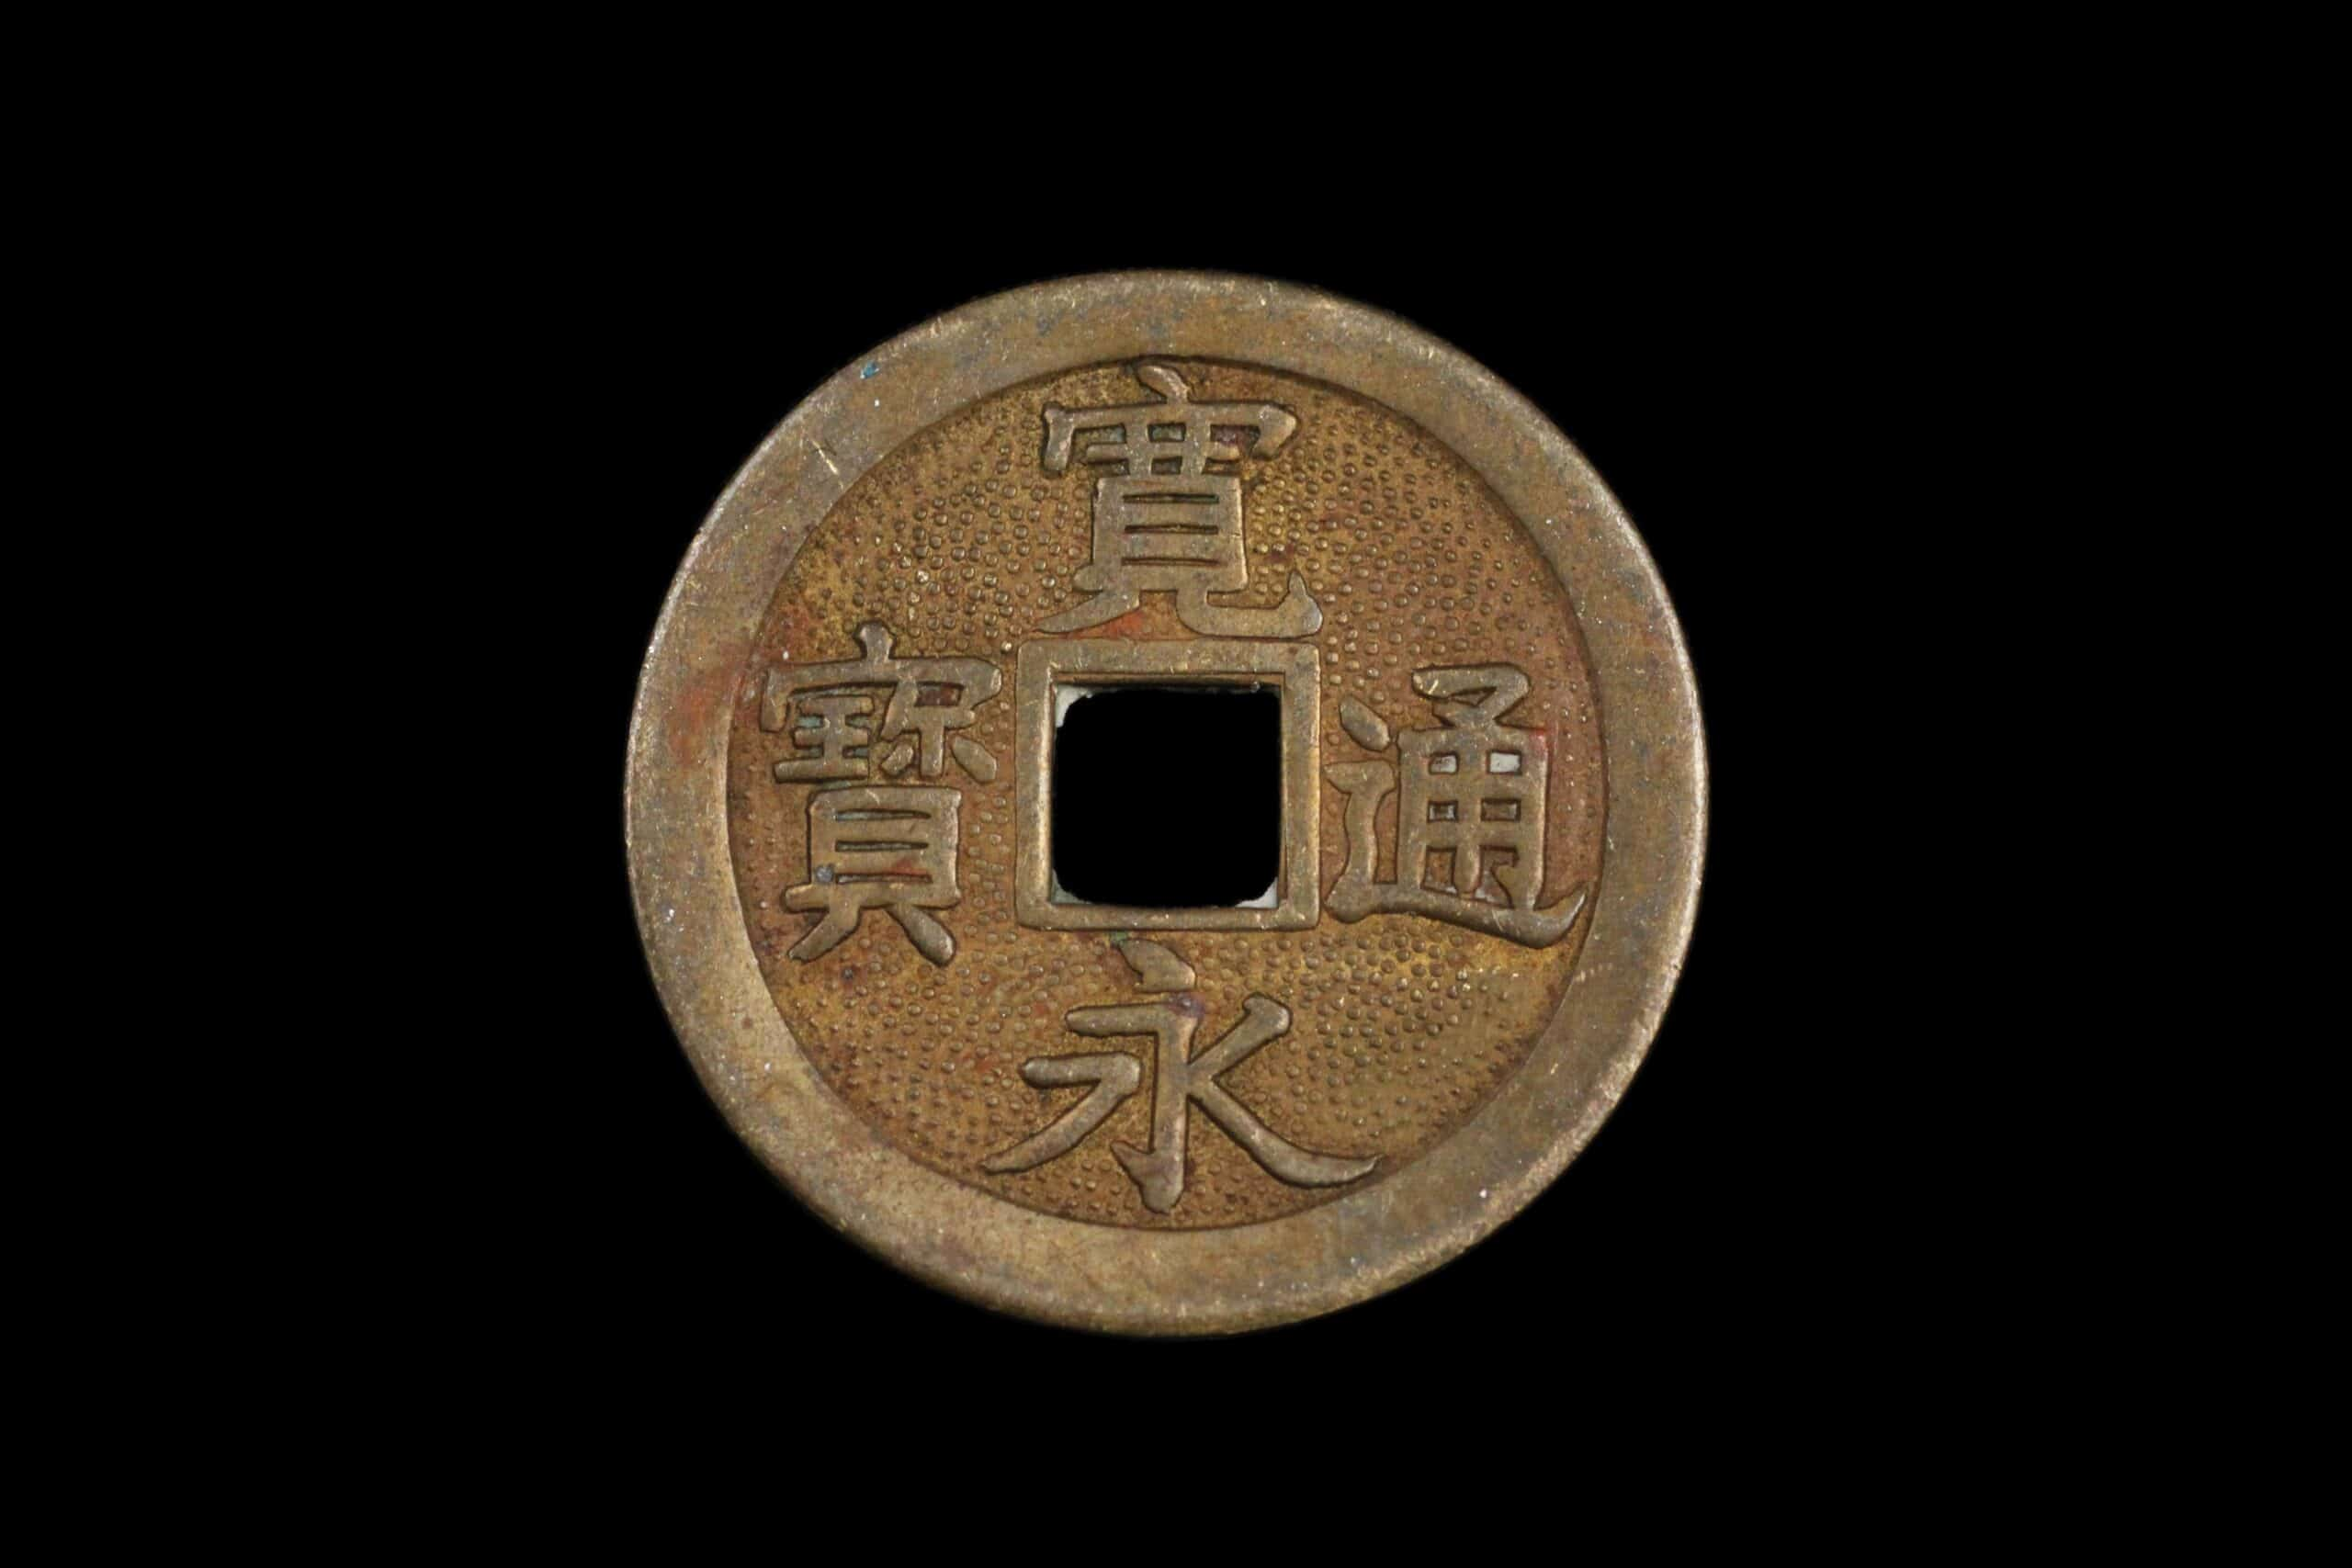 Chinese Bronze Coin with Square Hole in the Middle.